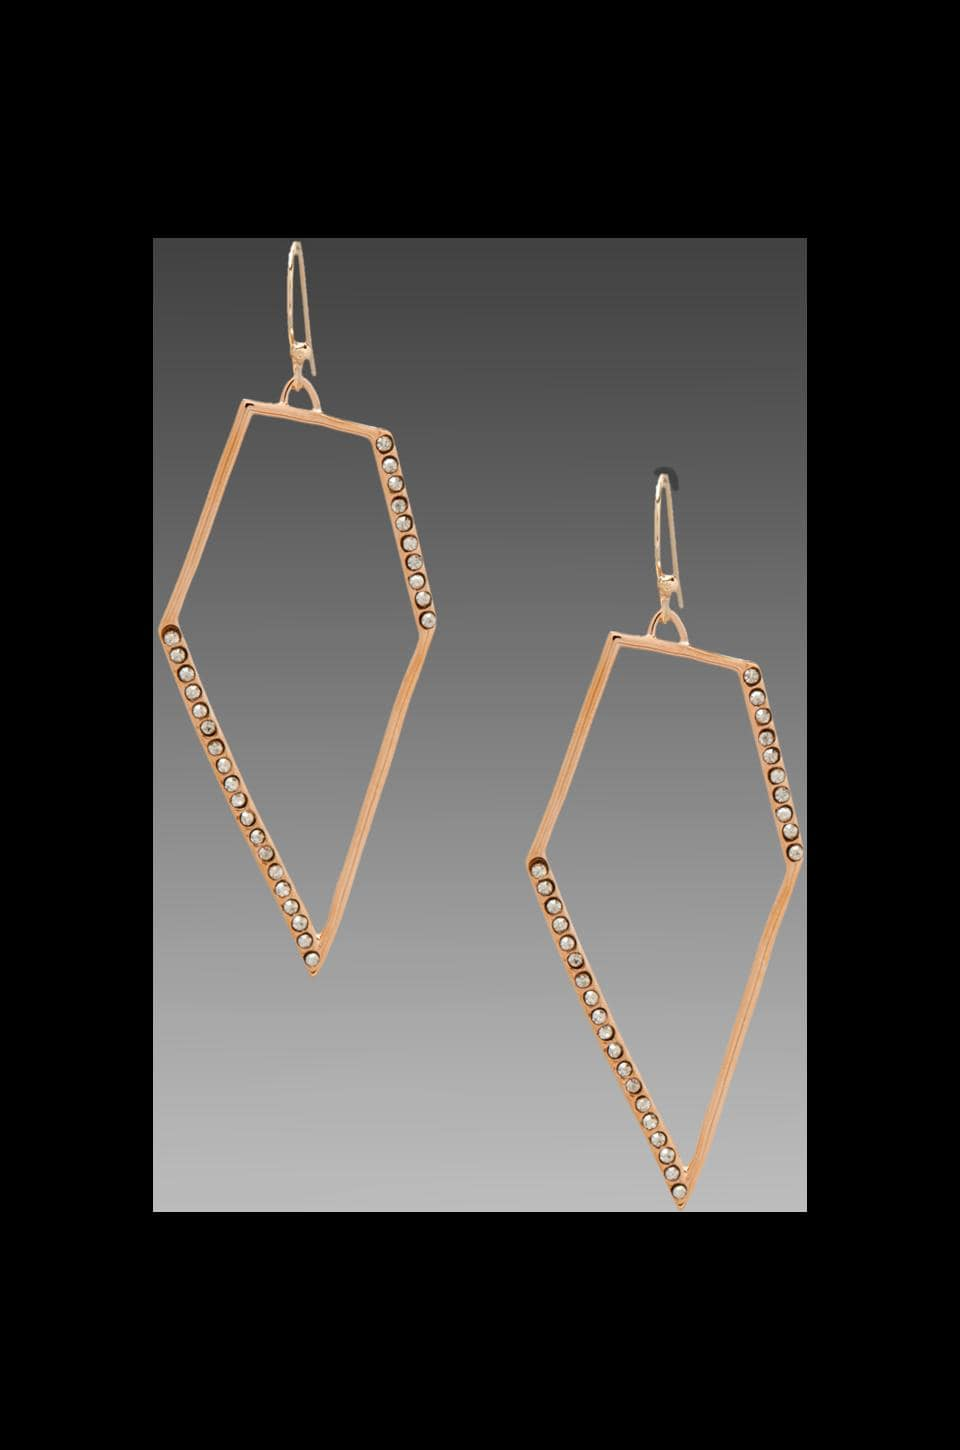 Alexis Bittar New Wave Rose Gold Pave Kite Earring